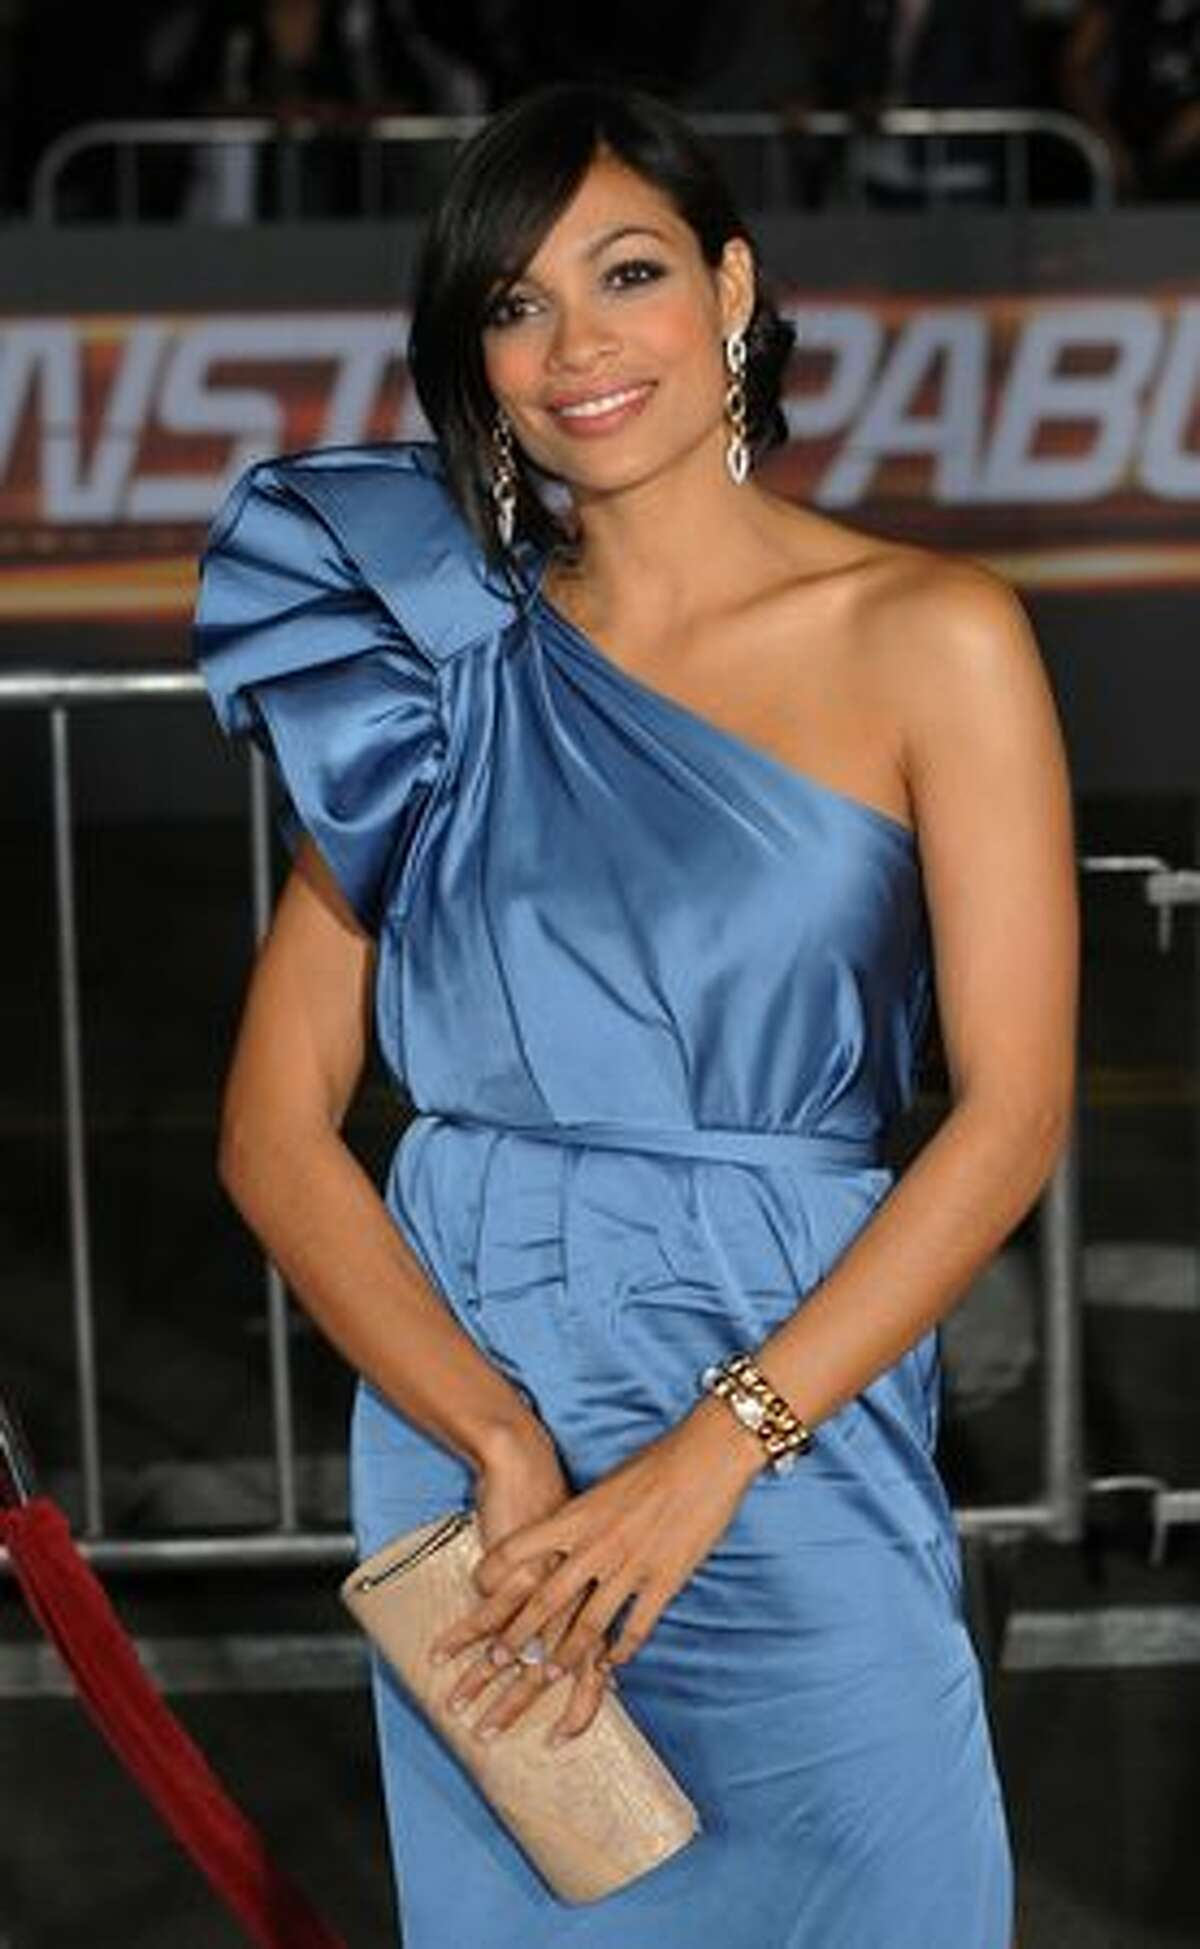 Actress Rosario Dawson arrives on the red carpet for the premiere of the film